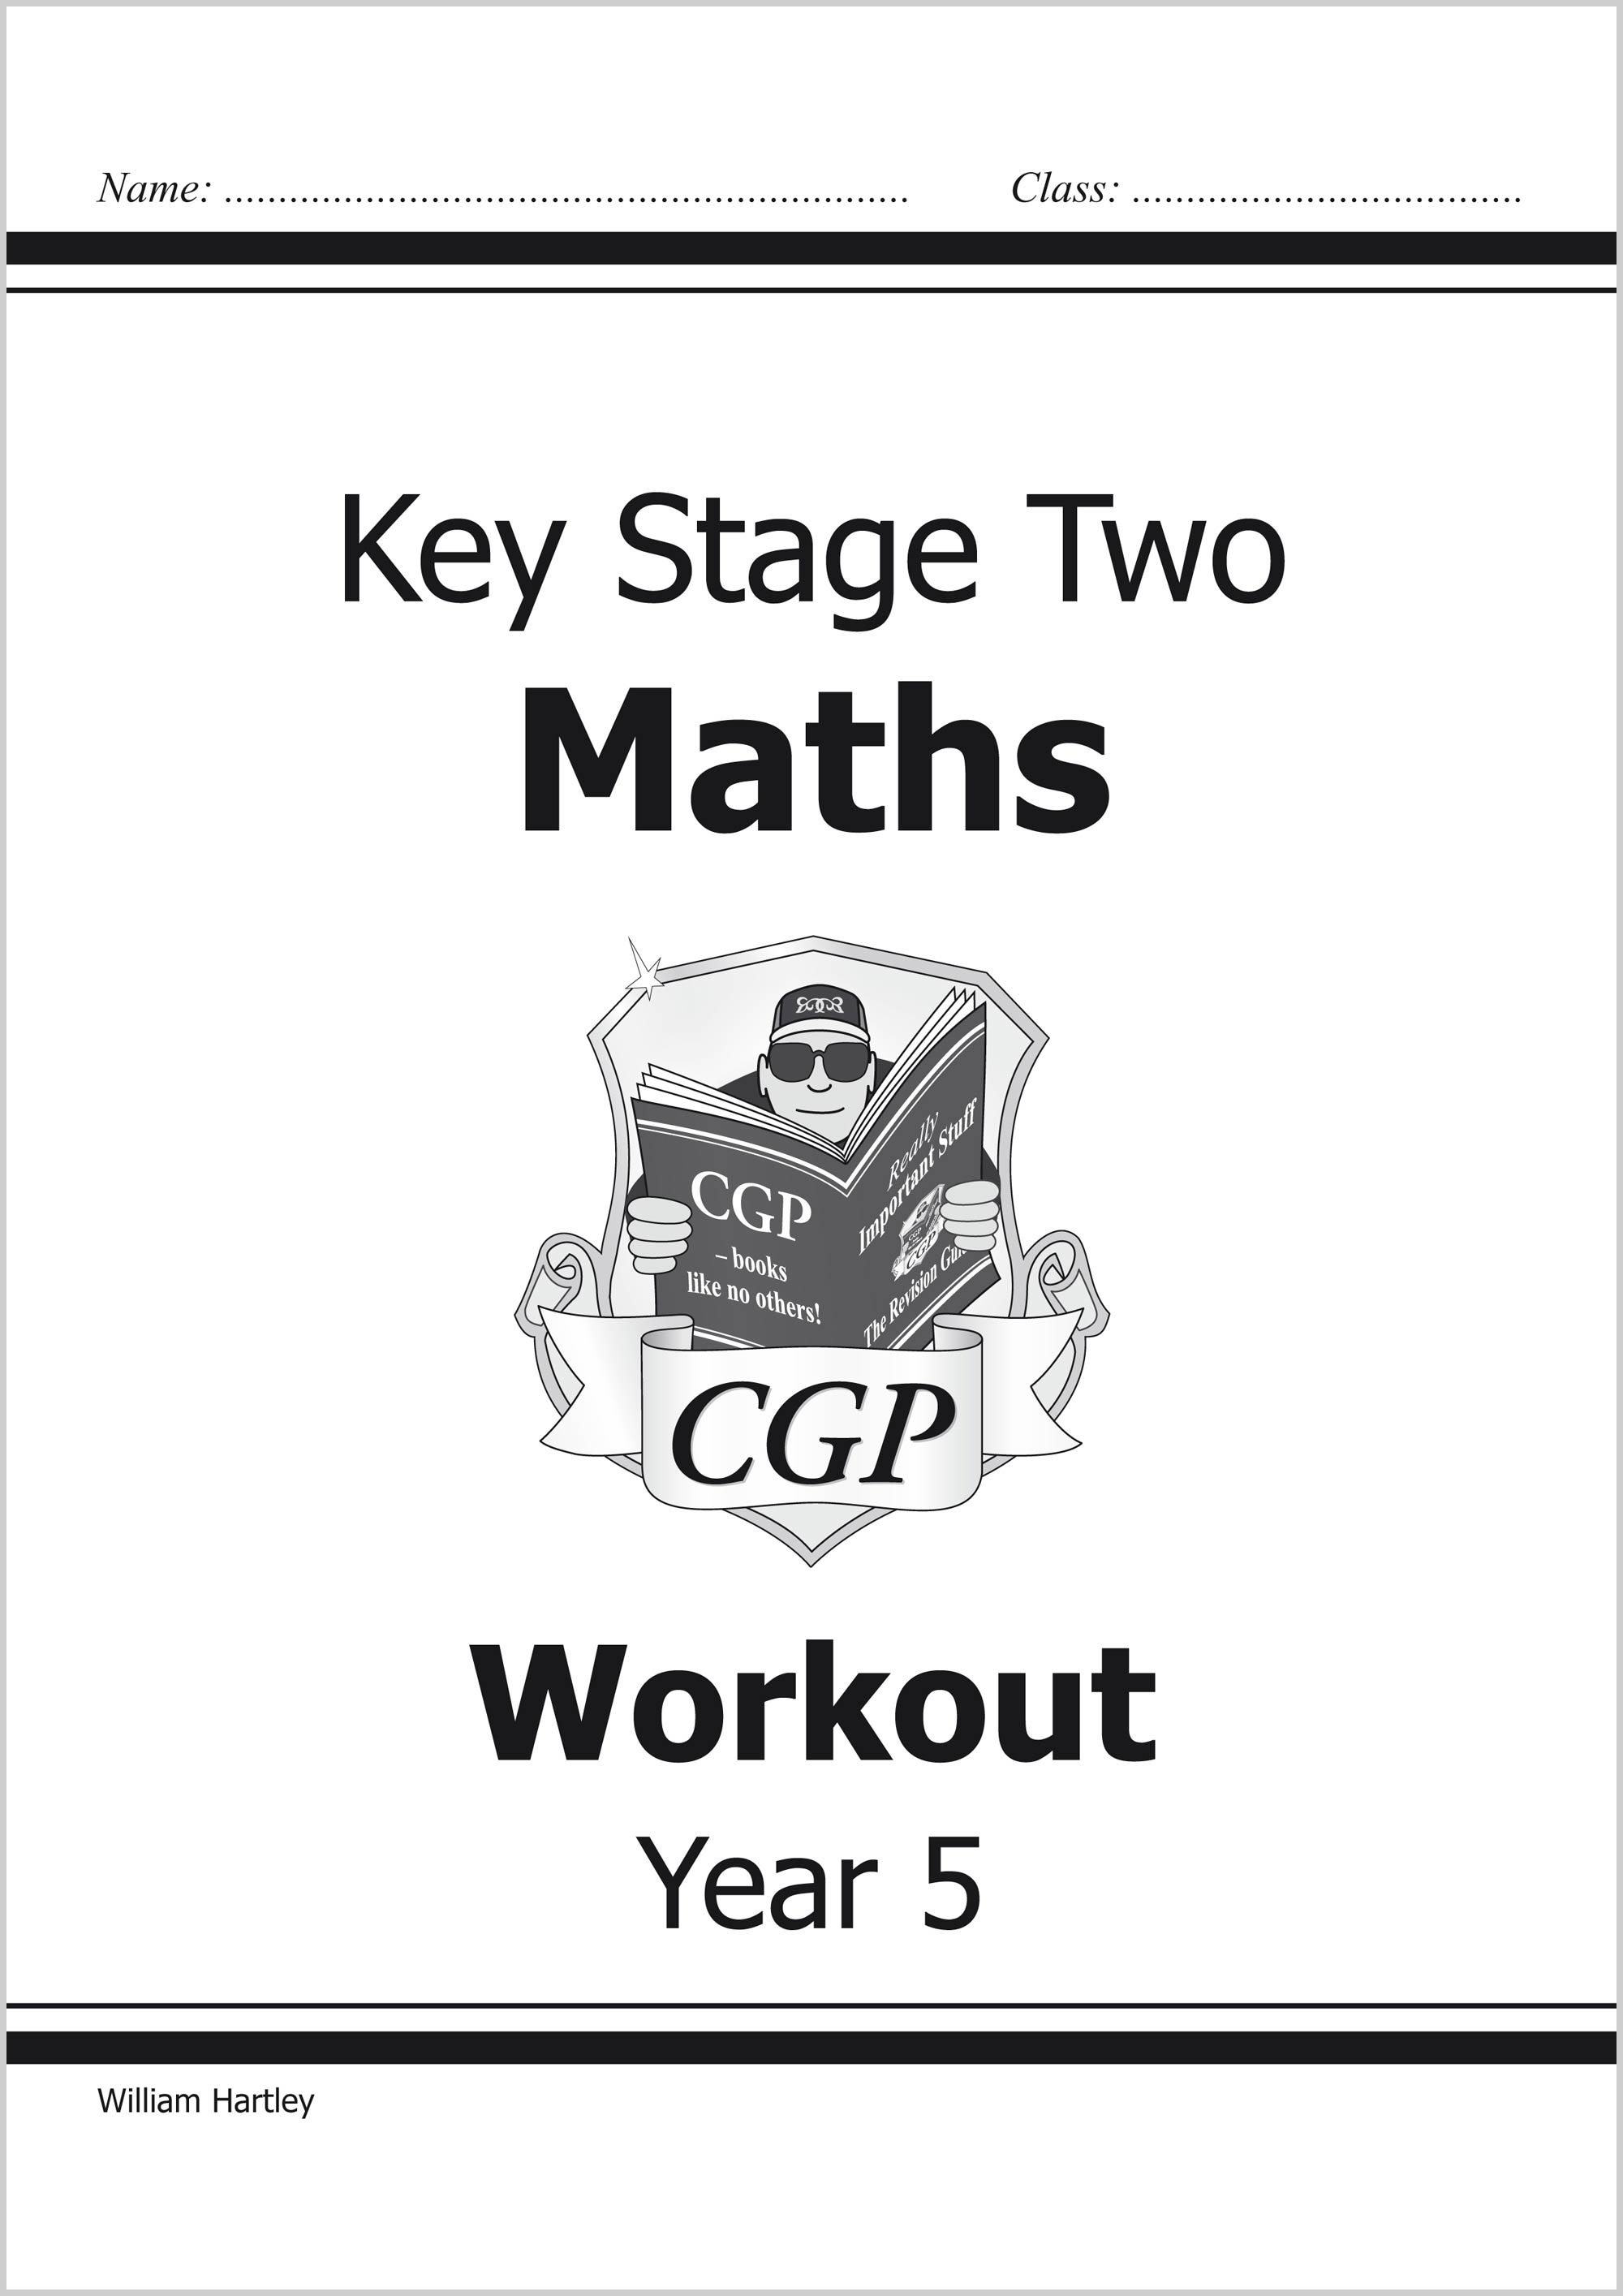 M5W21 - KS2 Maths Workout - Year 5